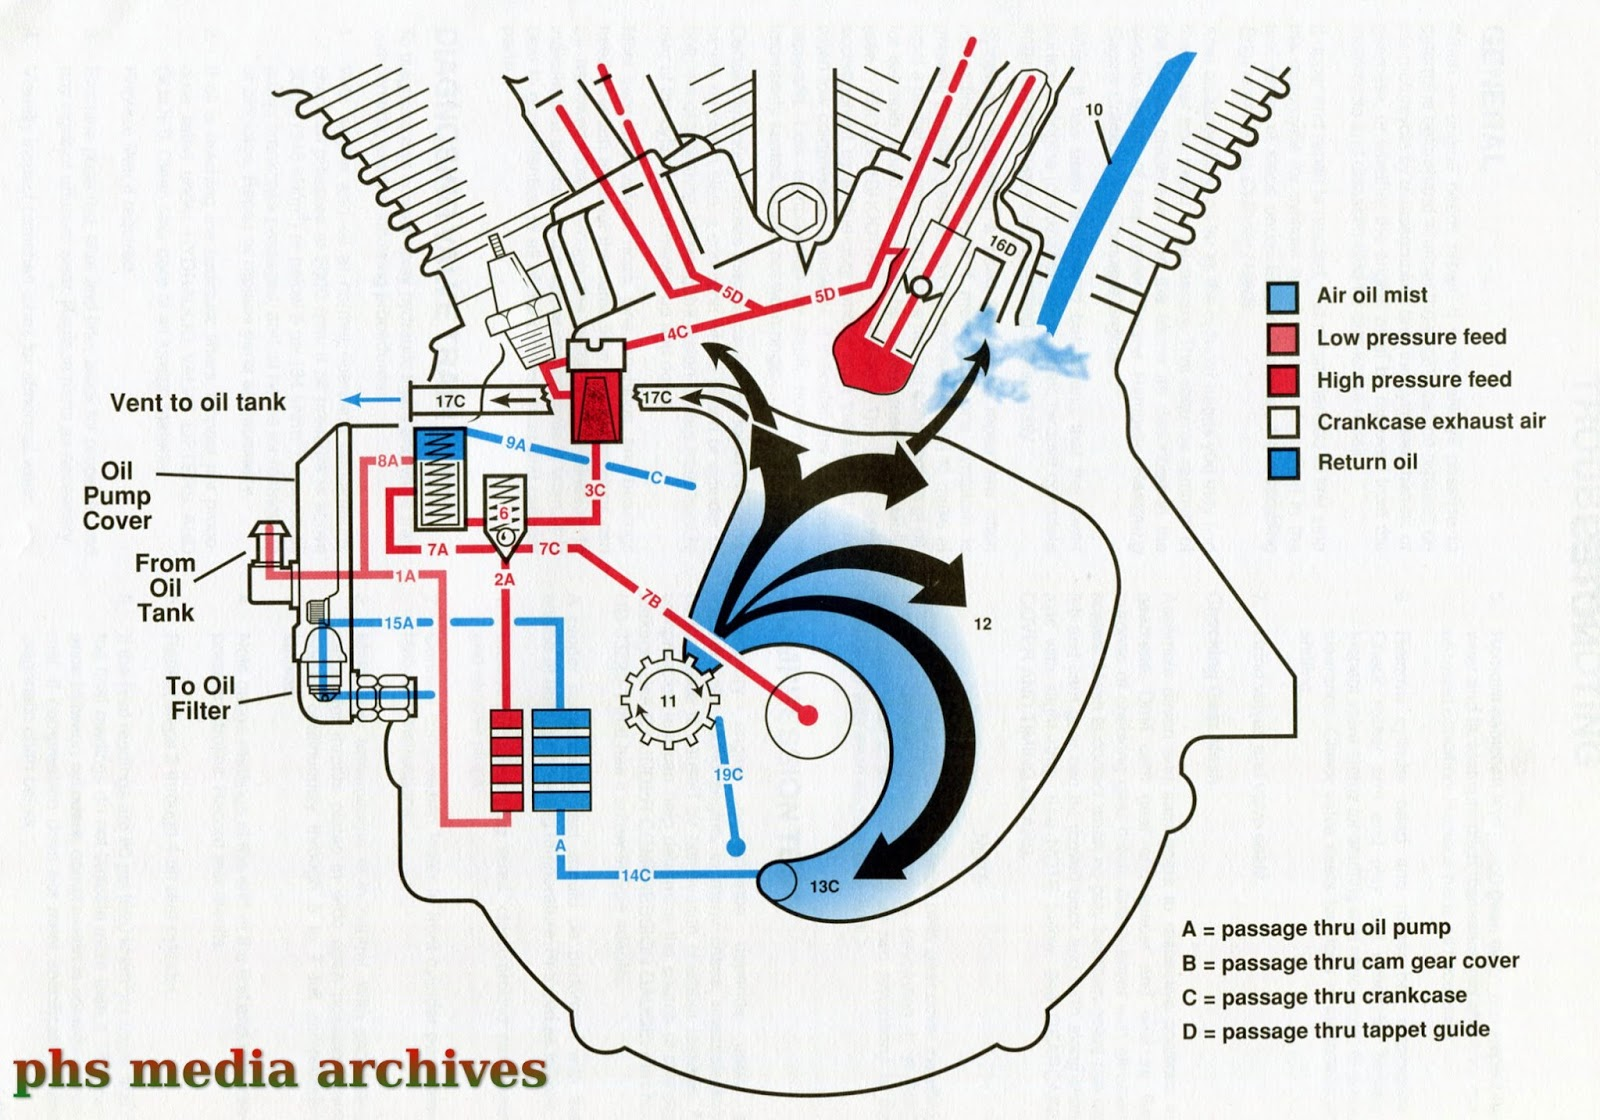 1994 Sportster Oil Circulation Diagram Trusted Wiring Harley Evo Flow Largest Diagrams U2022 Rh Ccrew Co Parts Carb